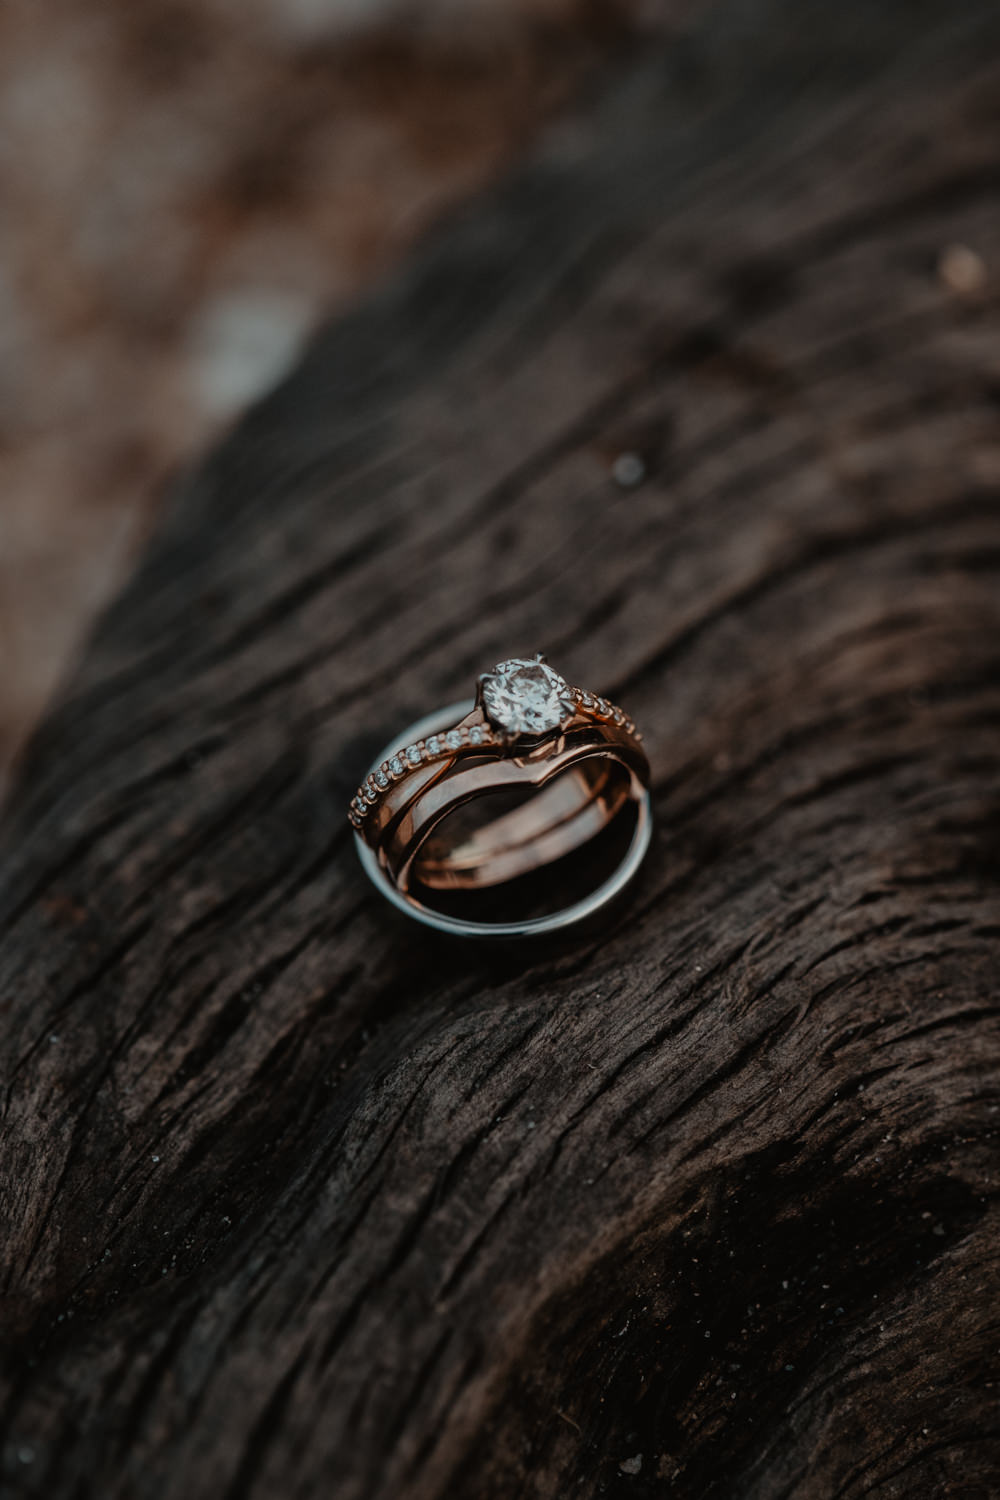 Osborne House Isle of Wight Natural Classic Outdoor Bride Groom Rings | Timeless Royal Inspired Seaside Wedding Holly Cade Photography